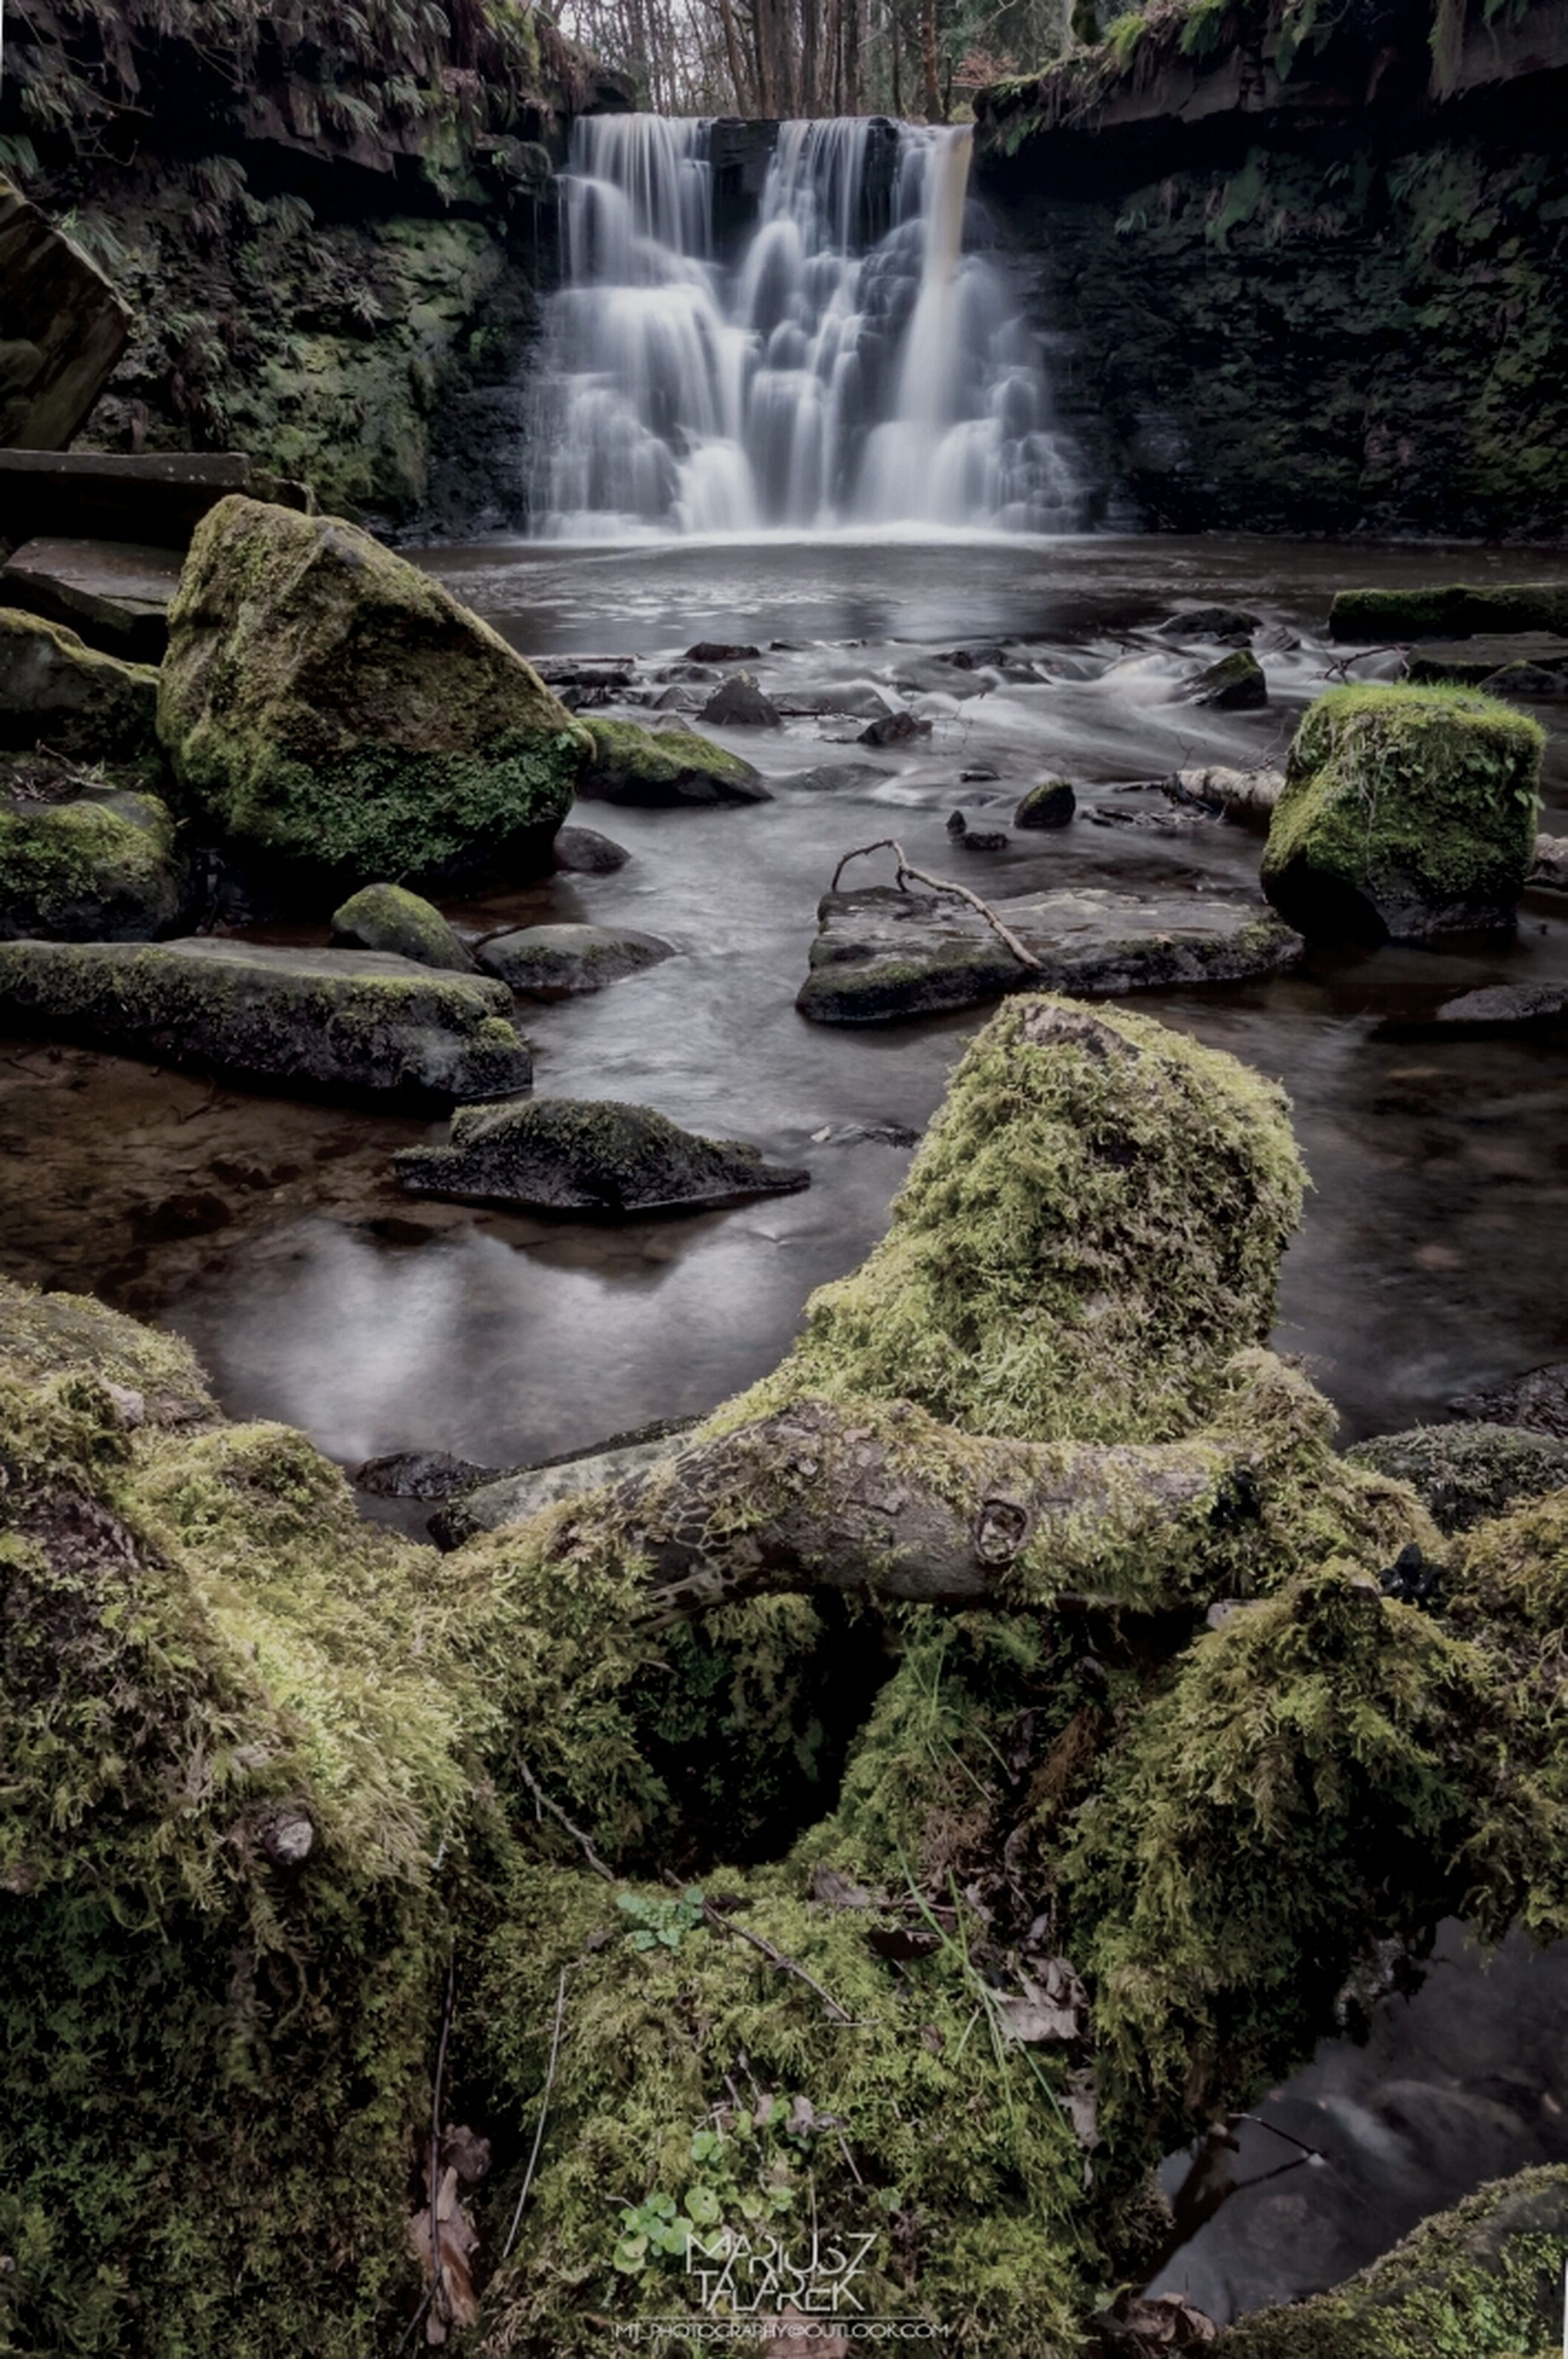 water, waterfall, flowing water, rock - object, motion, long exposure, flowing, beauty in nature, scenics, nature, forest, rock formation, tranquil scene, tranquility, stream, rock, idyllic, moss, river, splashing